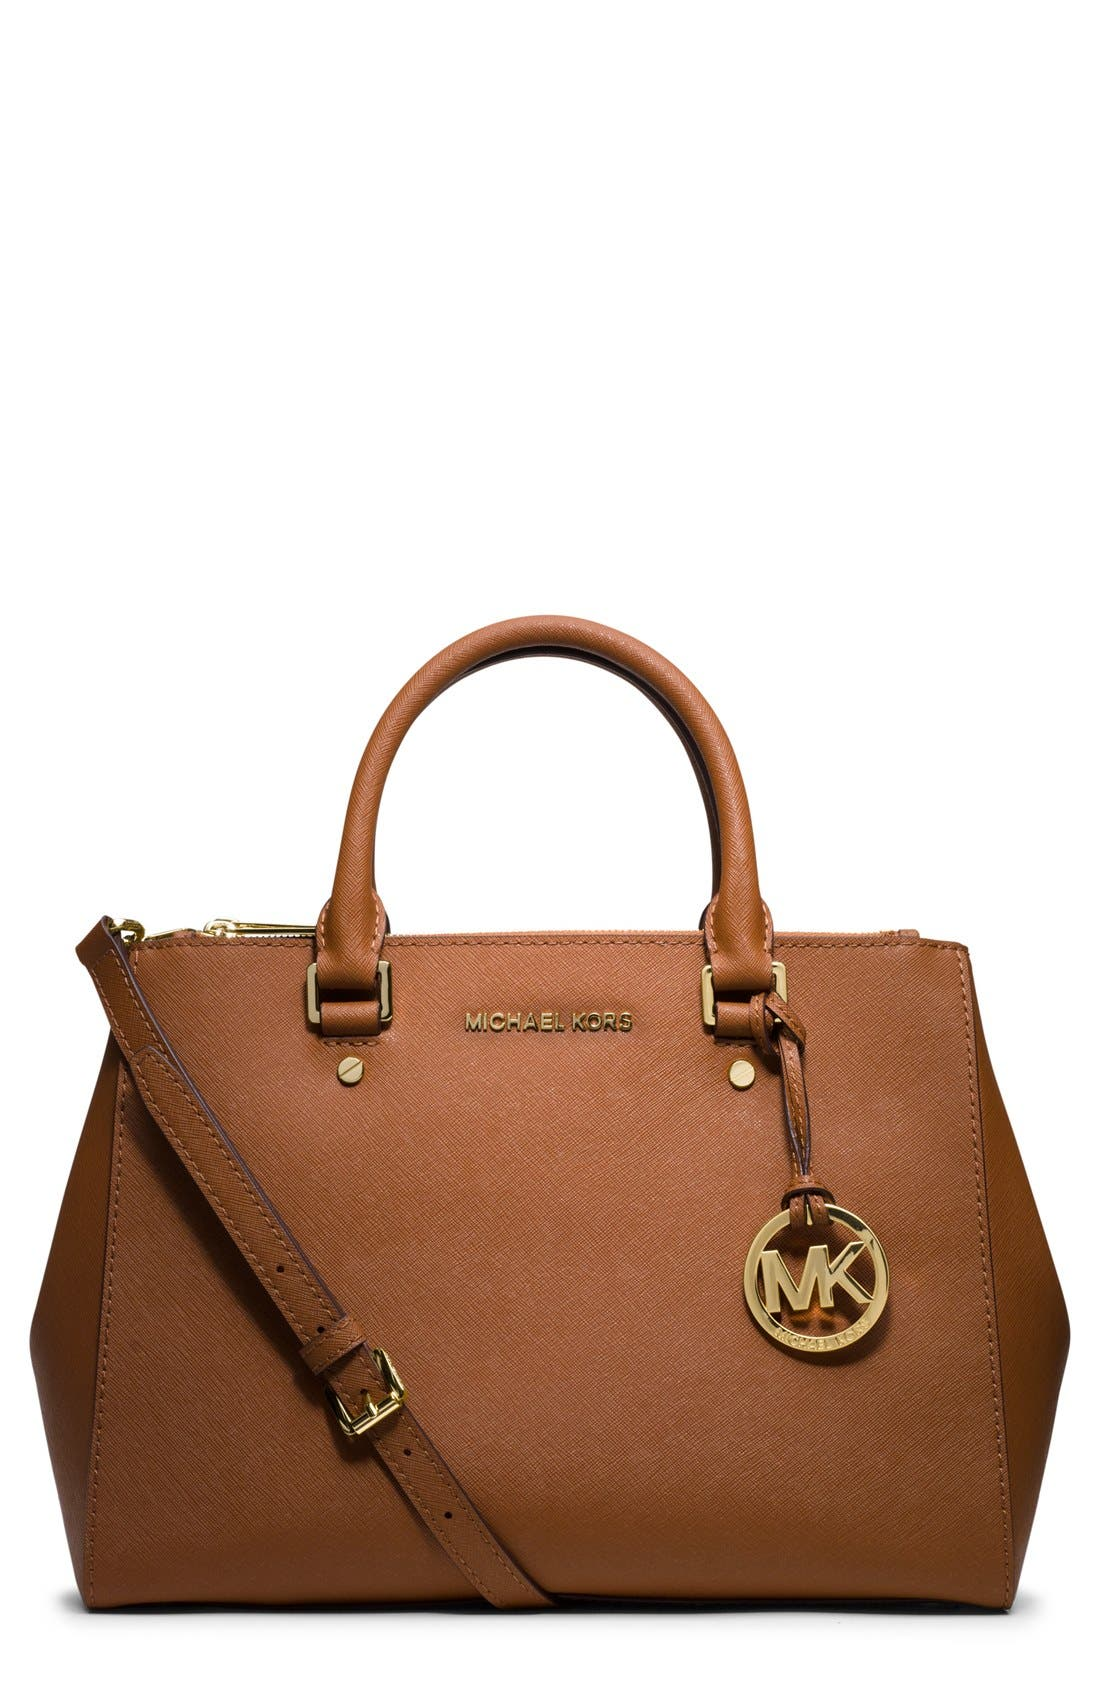 Alternate Image 1 Selected - MICHAEL Michael Kors 'Medium Sutton' Saffiano Leather Tote